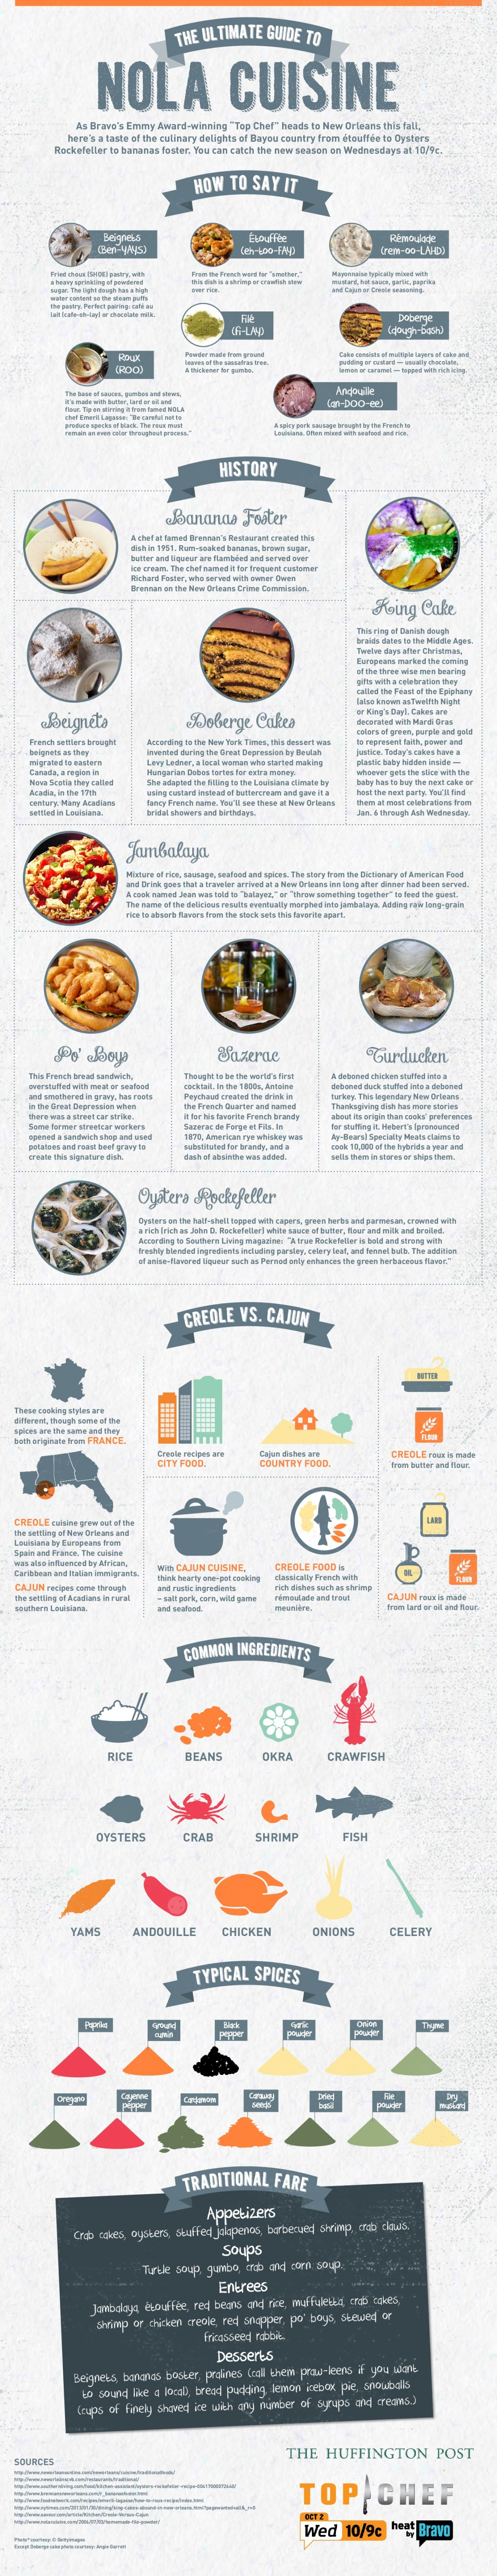 The Ultimate Guide To Cooking Like A Boss In New Orleans (INFOGRAPHIC)